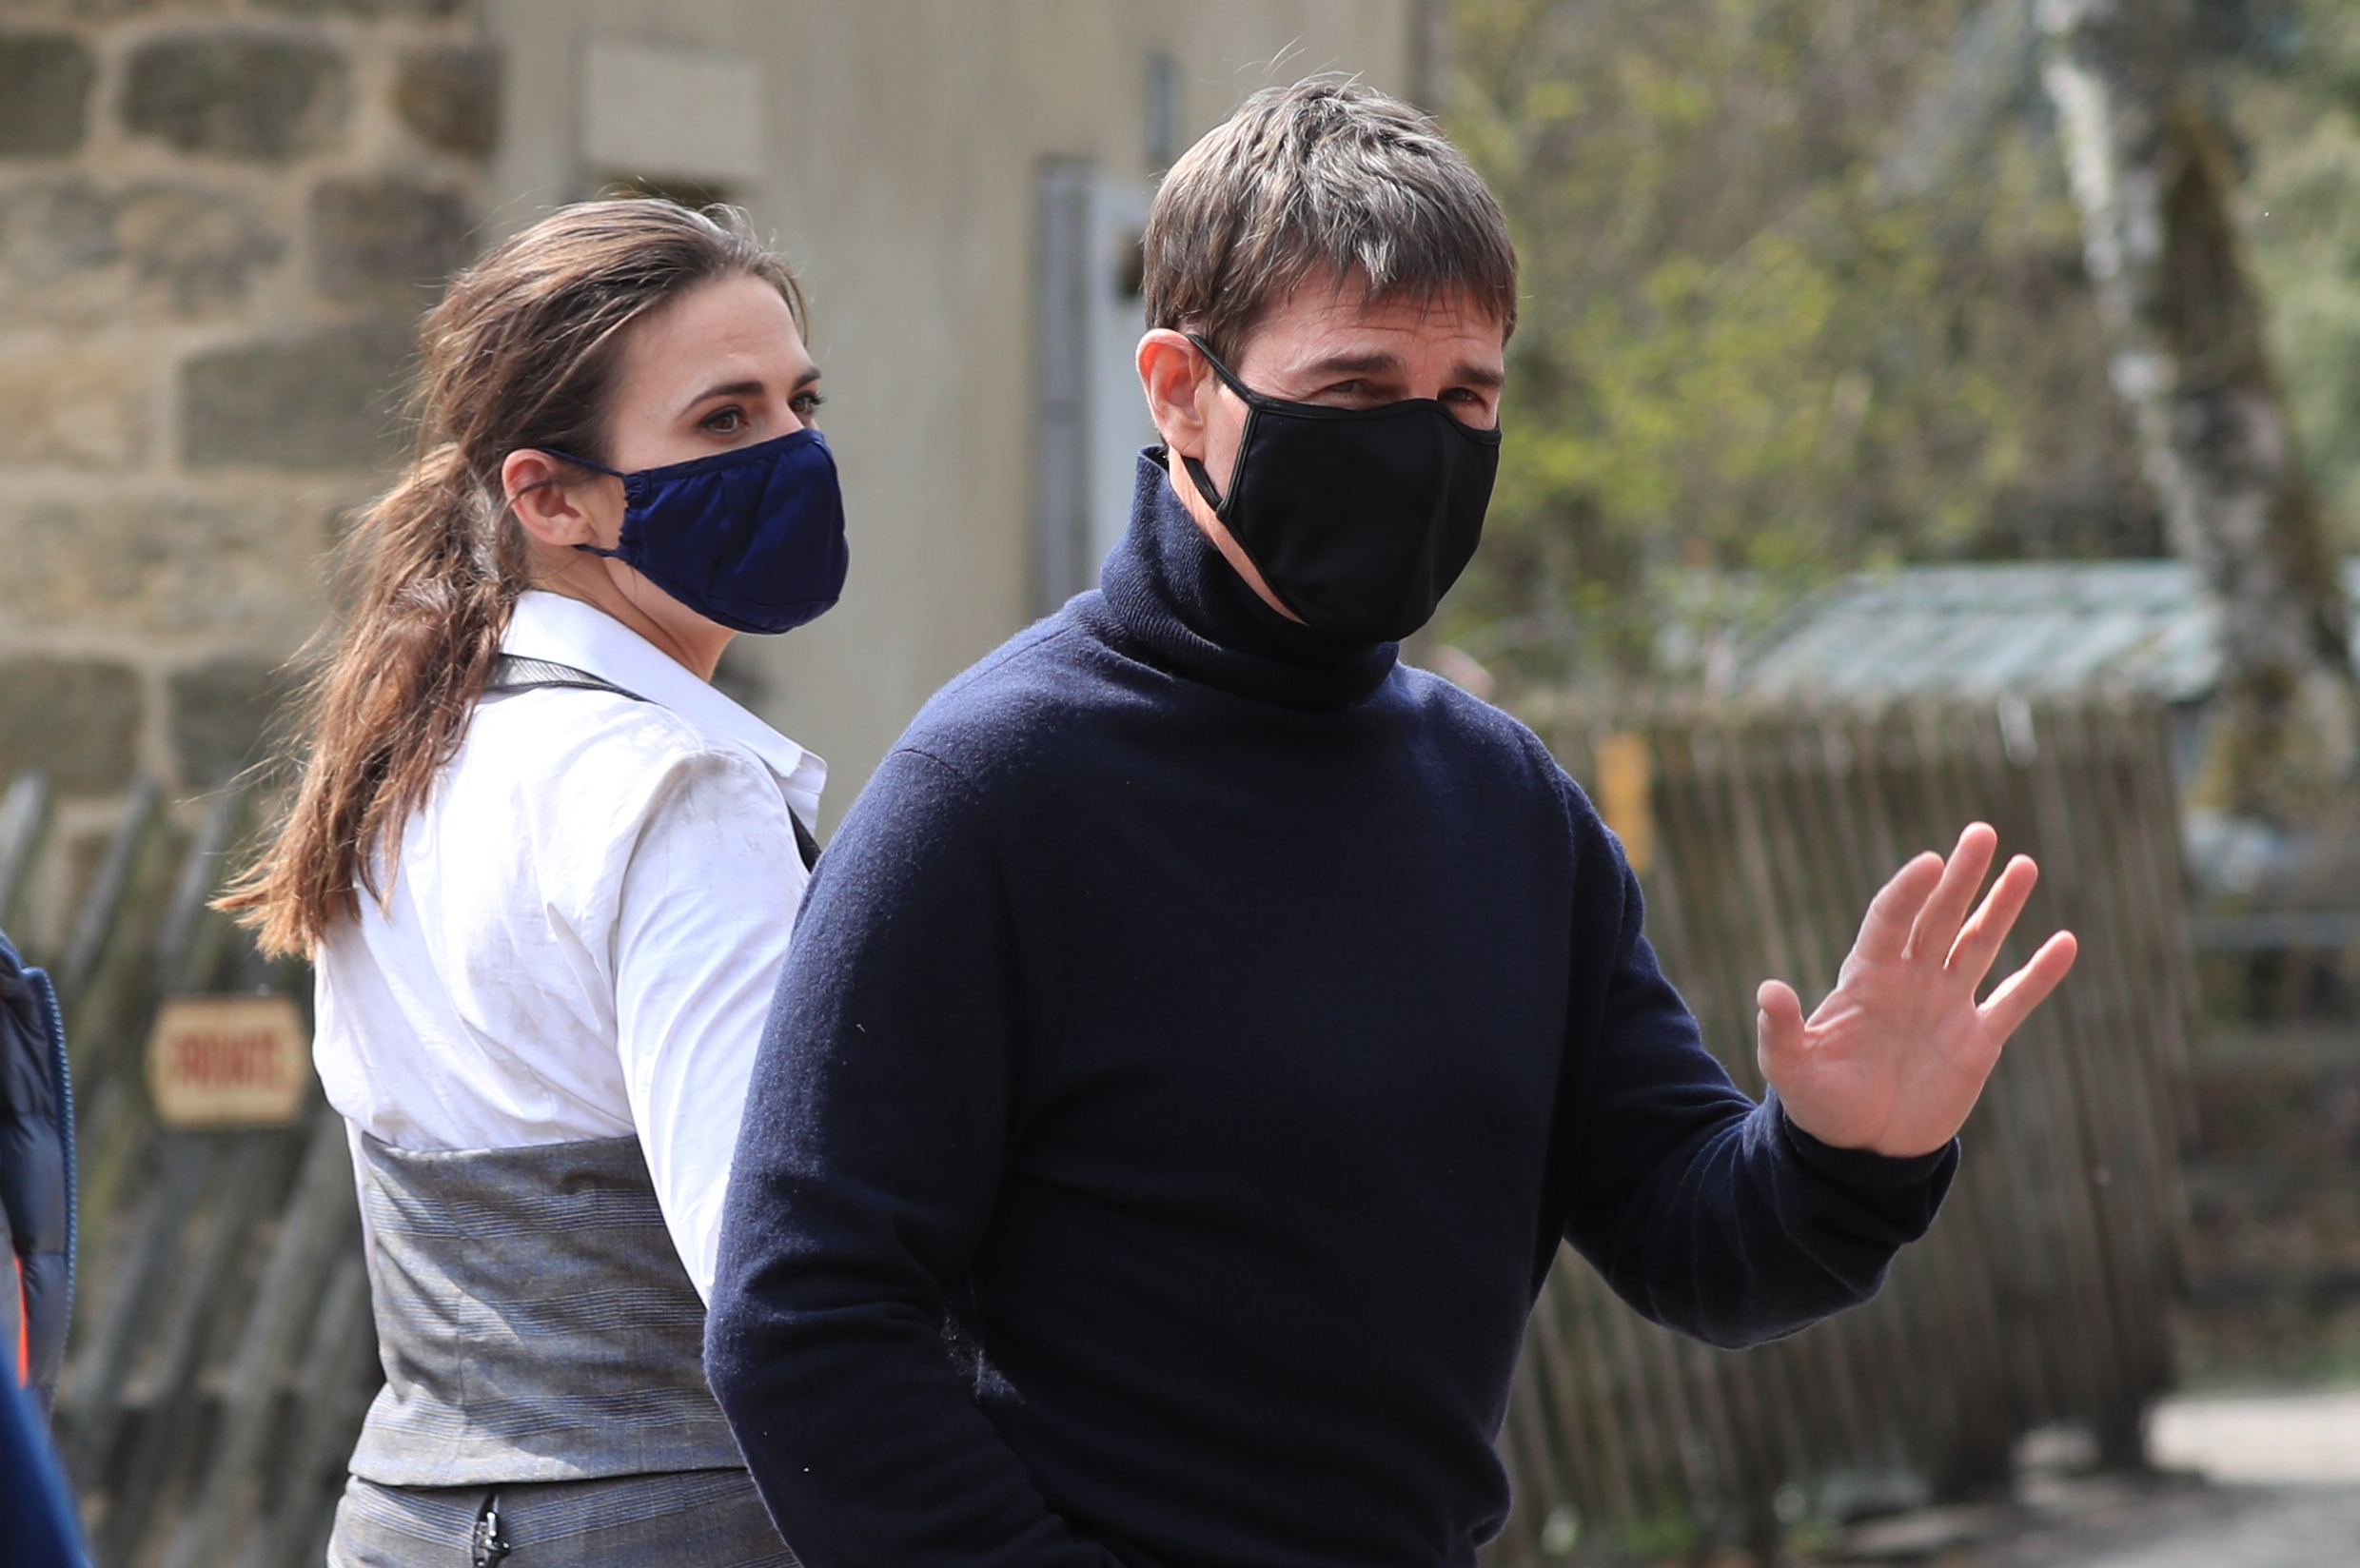 <p>Actor Tom Cruise waves to onlookers as he walks to the set of his latest project, which is filming in the sidings of the railway station in the village of Levisham in the North York Moors. Picture date: Tuesday April 20, 2021.</p>